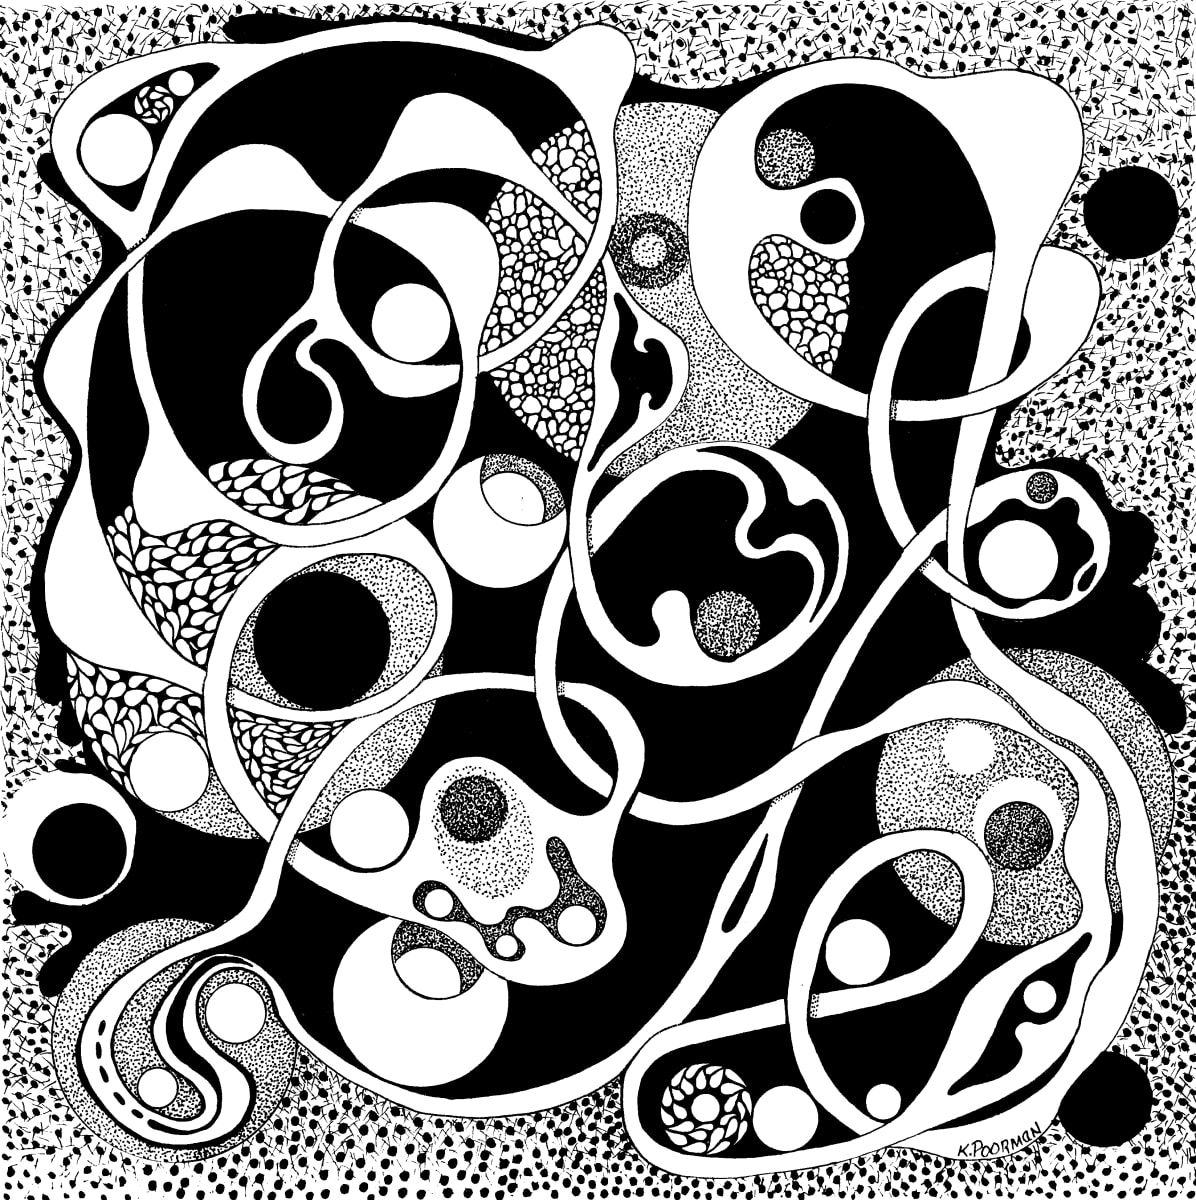 Tangles I by Kevin Poorman